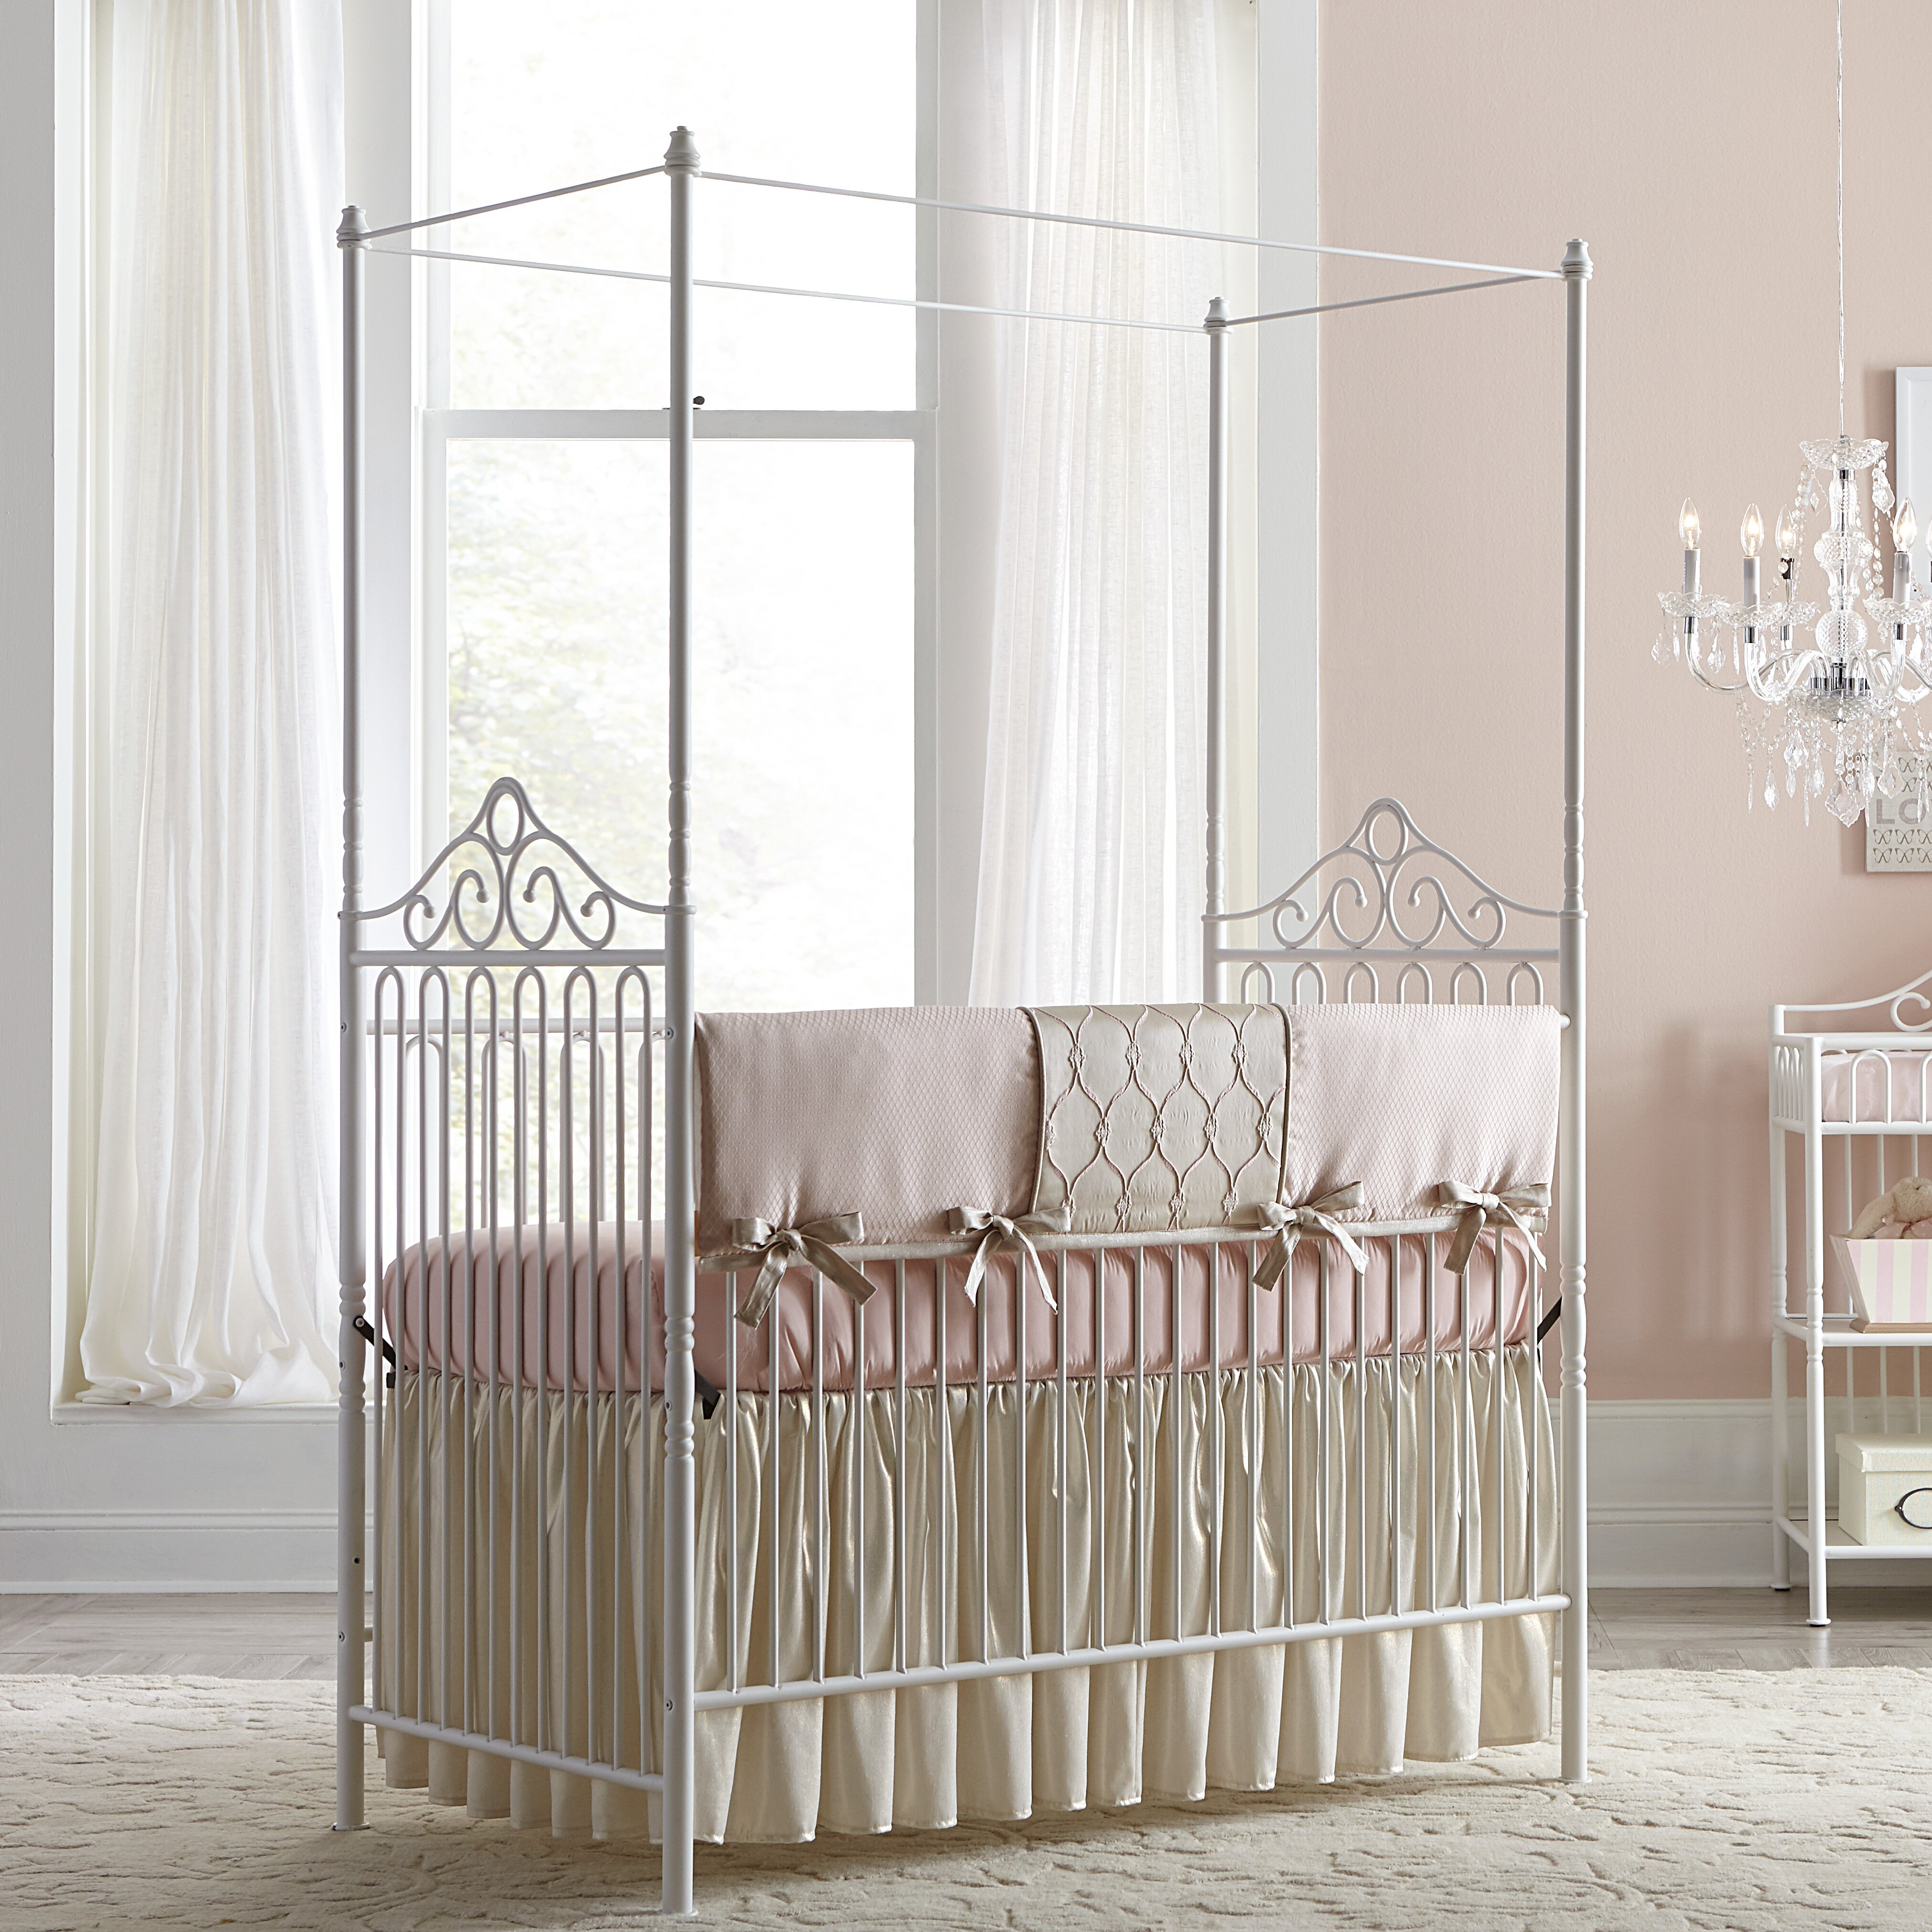 Crib for sale louisville ky - Baby Cribs Louisville Ky Baby S Dream Furniture Inc Angelica Canopy 2 In 1 Convertible